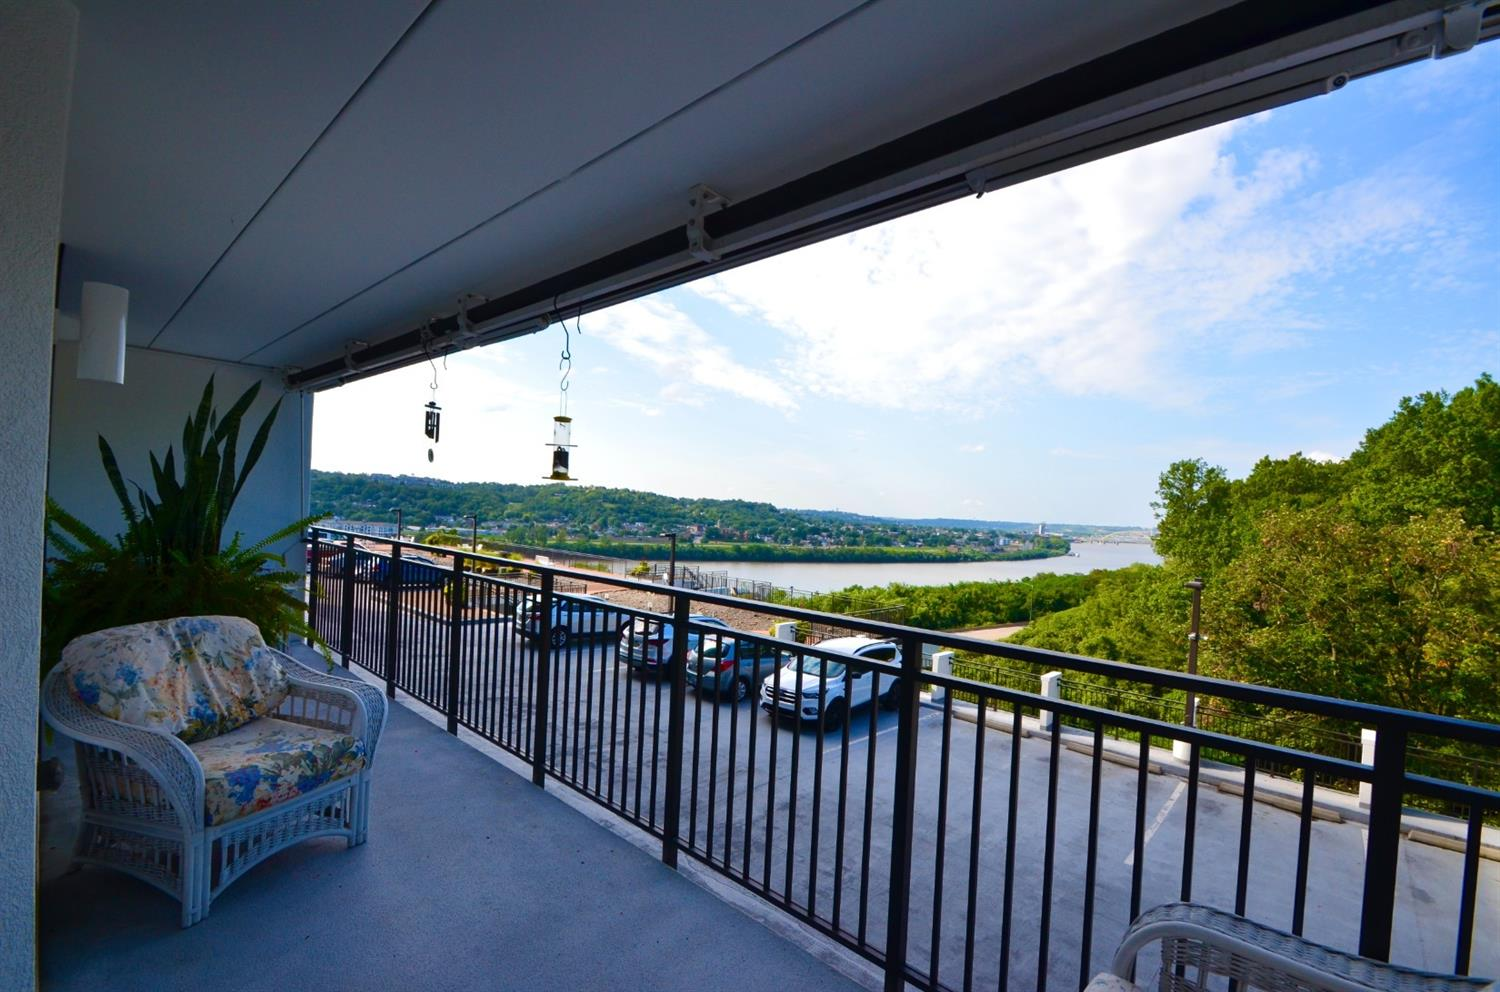 And here is that private RIVER VIEW balcony!  There is also a power awning to give extra sun protection with automatic wind sensor that closes awning so it does not suffer damage.  Who even knew that was a thing?! You have a year round view of the Big Mac bridge every day and FIREWORKS on special occasions!